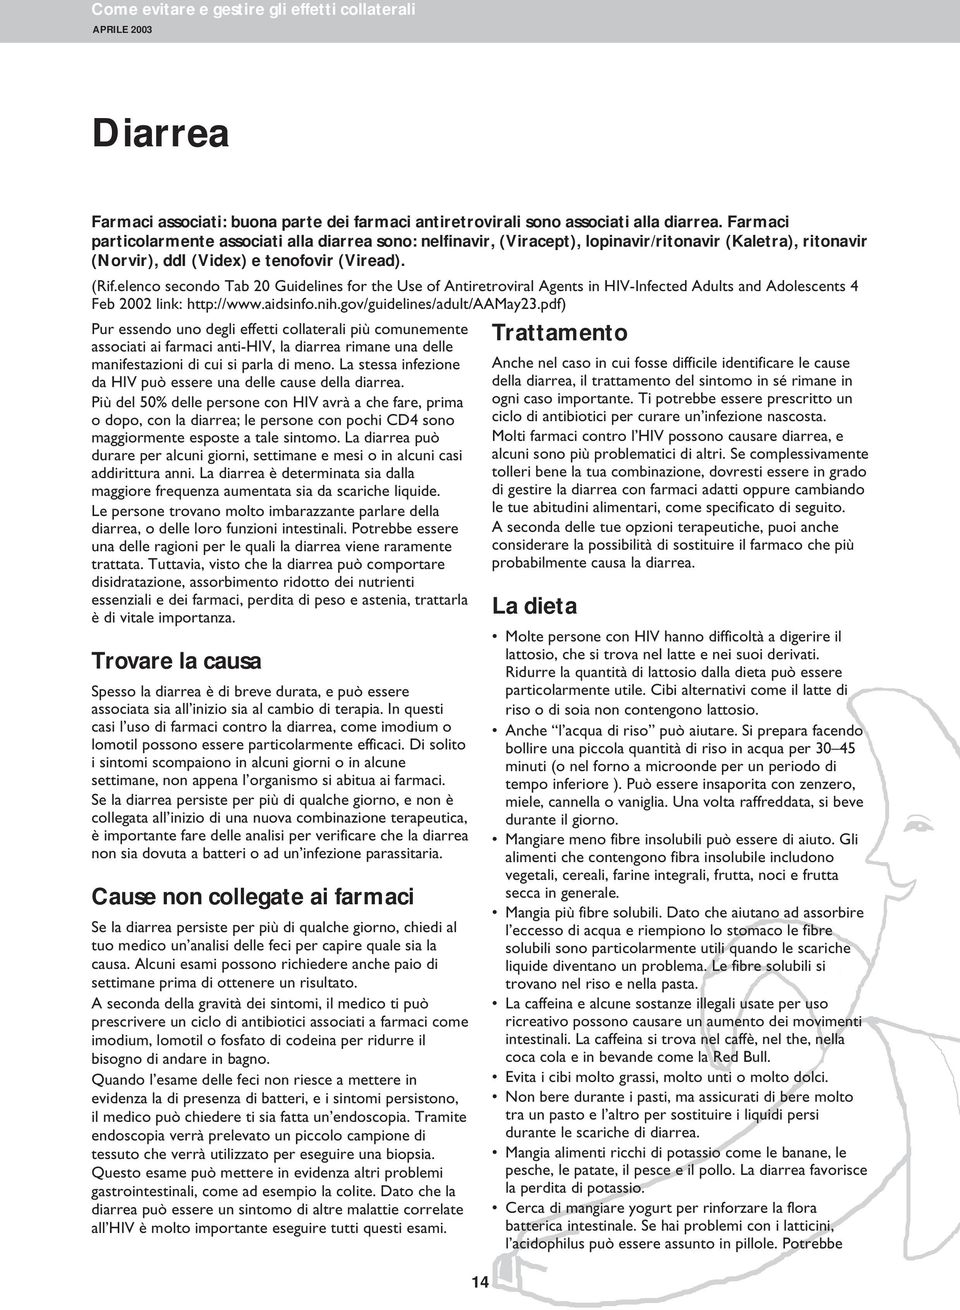 elenco secondo Tab 20 Guidelines for the Use of Antiretroviral Agents in HIV-Infected Adults and Adolescents 4 Feb 2002 link: http://www.aidsinfo.nih.gov/guidelines/adult/aamay23.